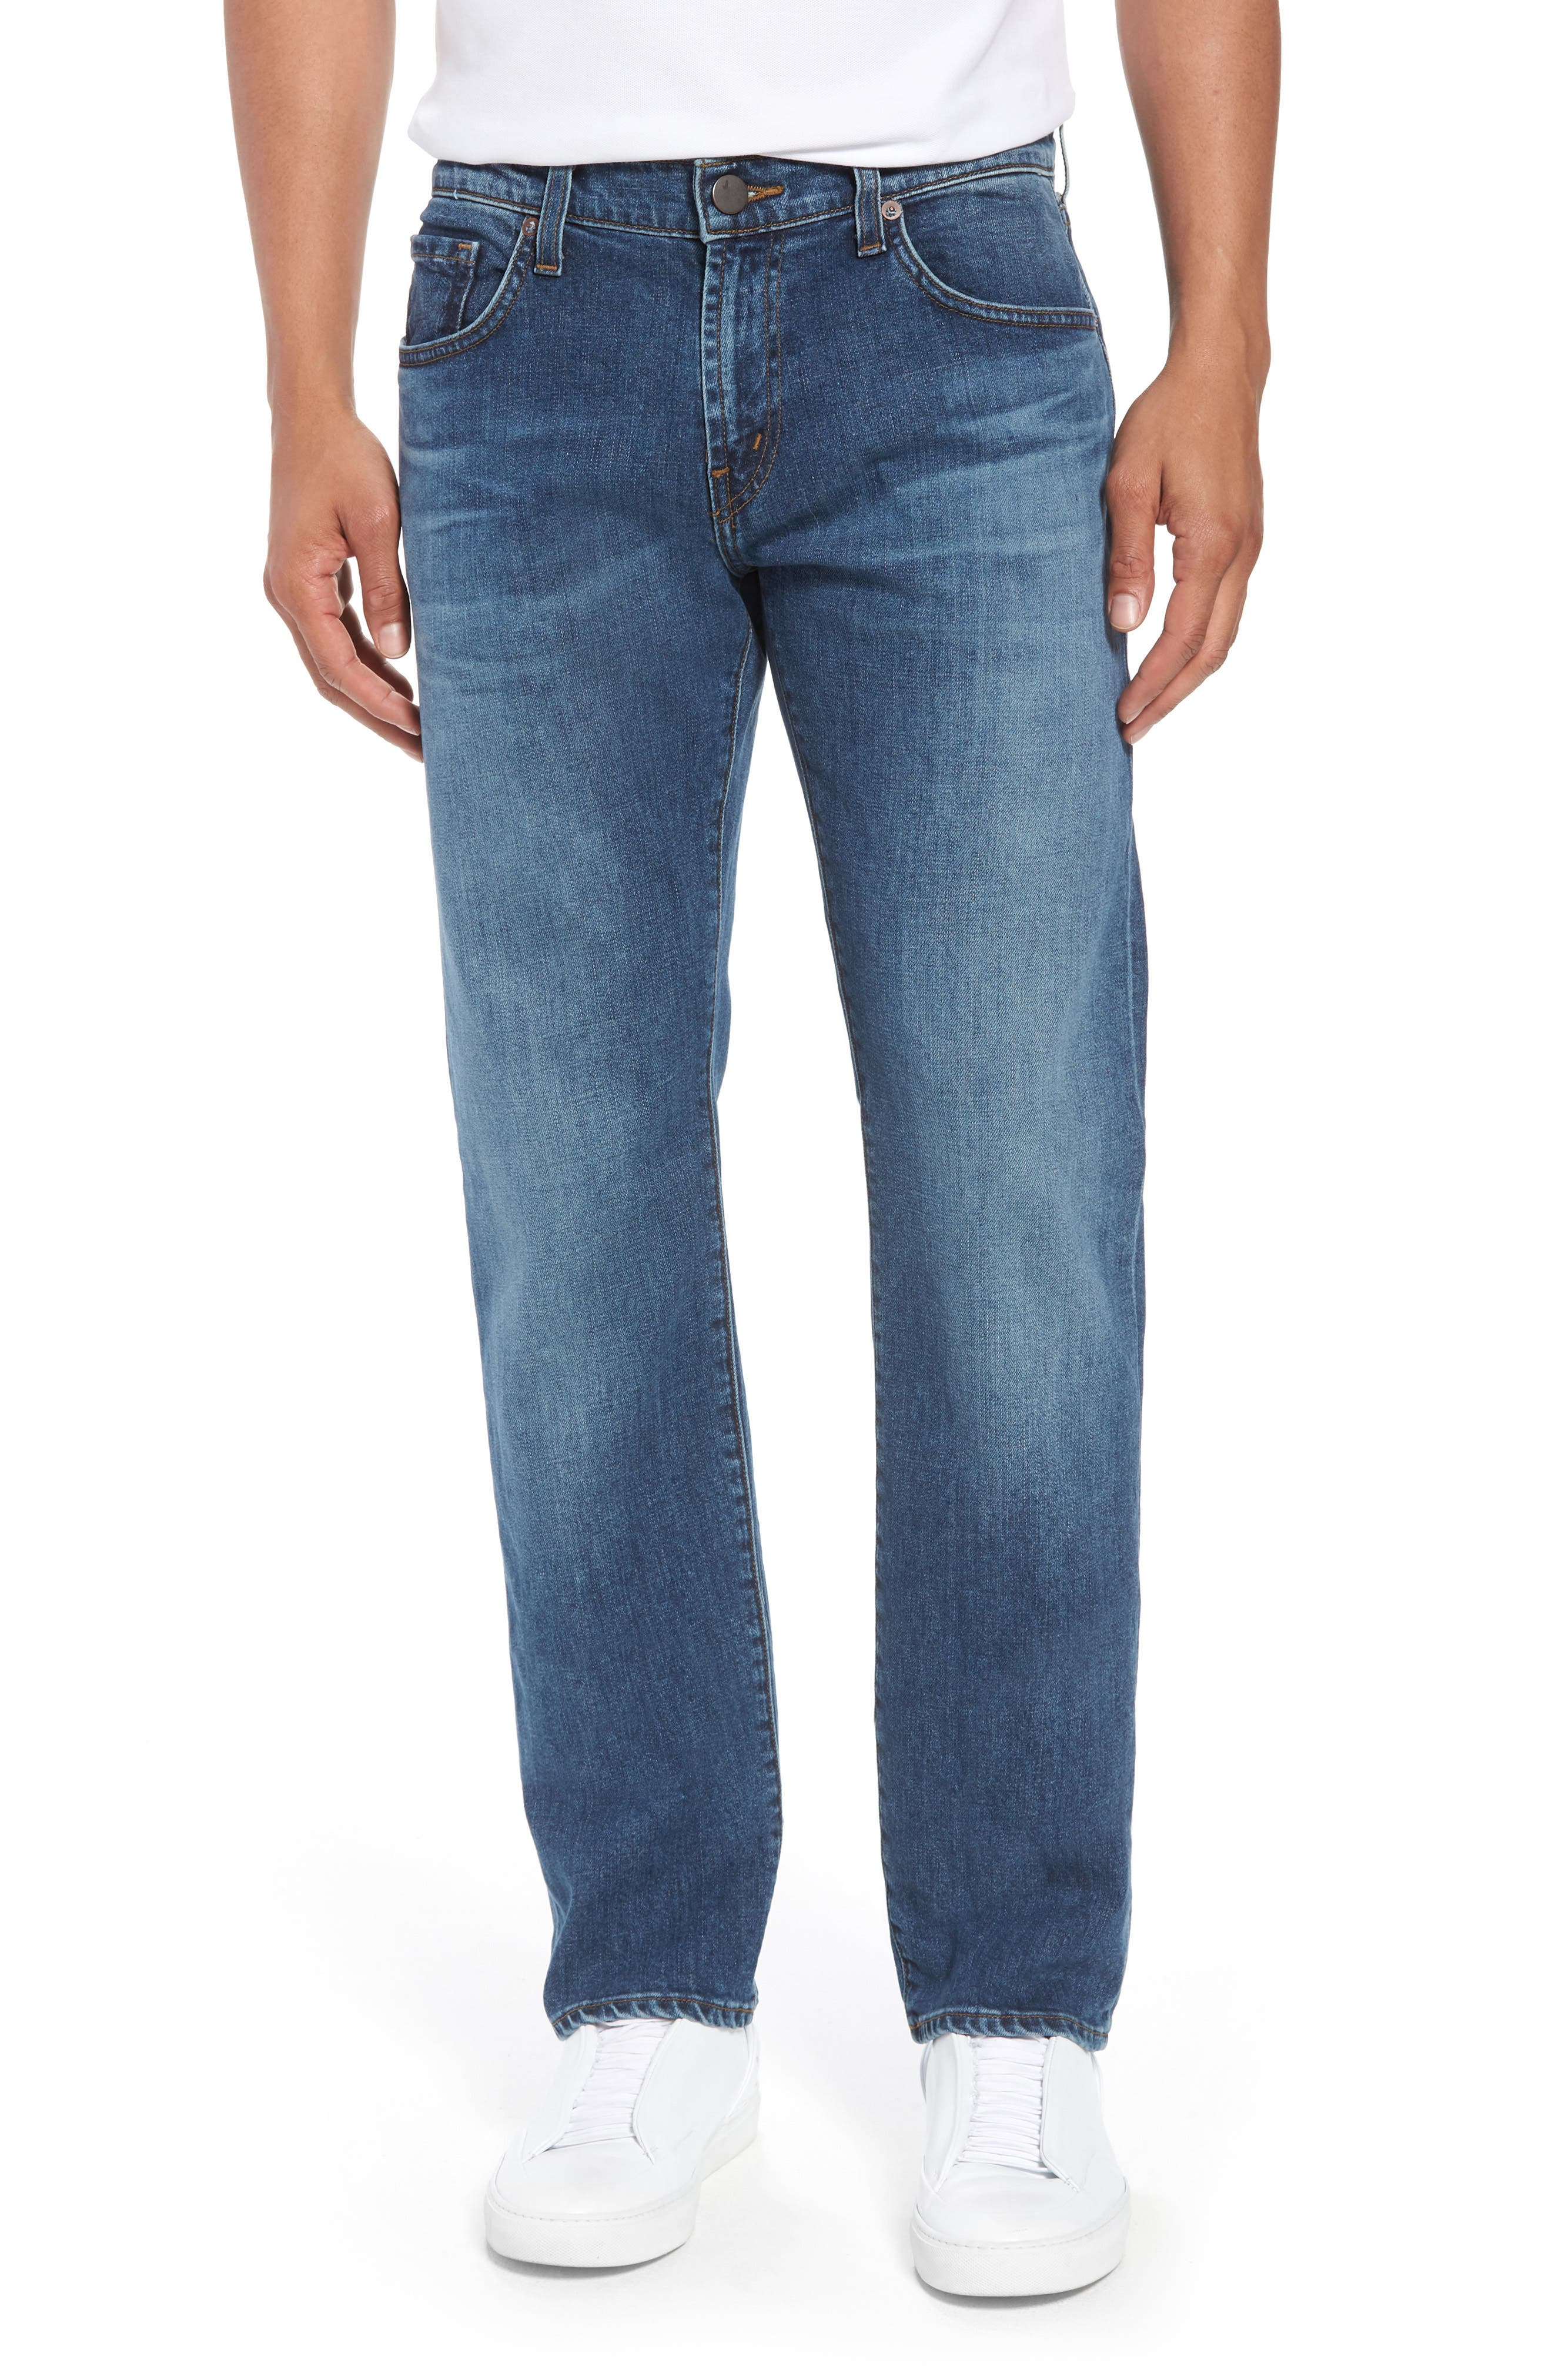 Kane Slim Straight Leg Jeans,                         Main,                         color, Barva